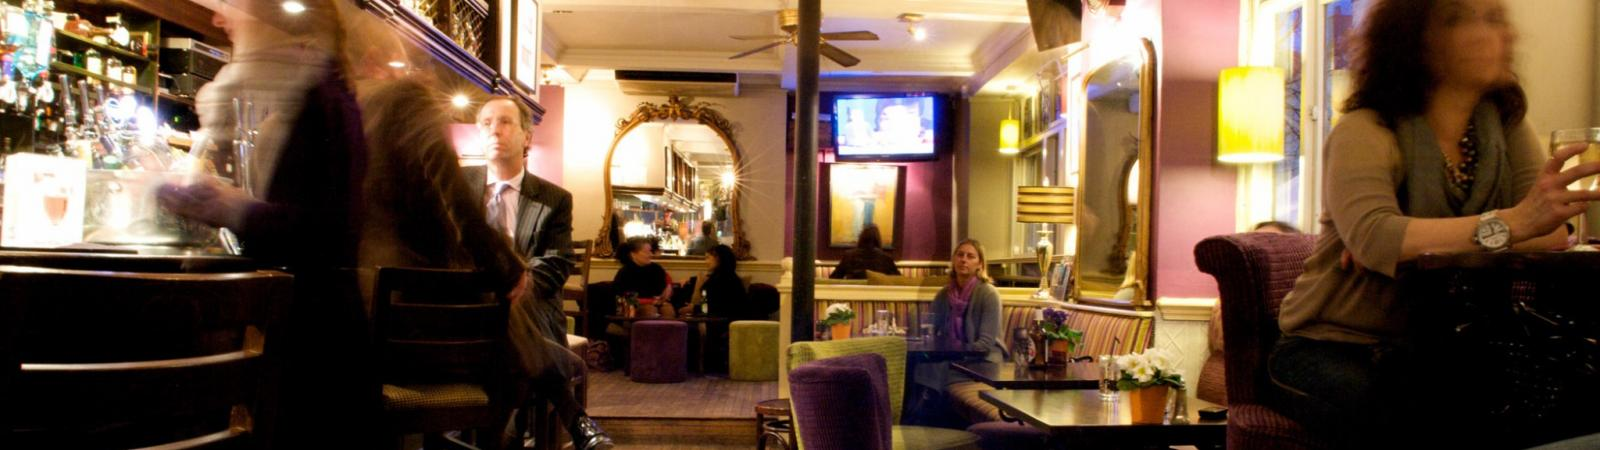 MONTPELLIER WINE BAR on Cheltenham Night Out | Promoting Cheltenham's nightlife for a great night out in Cheltenham.